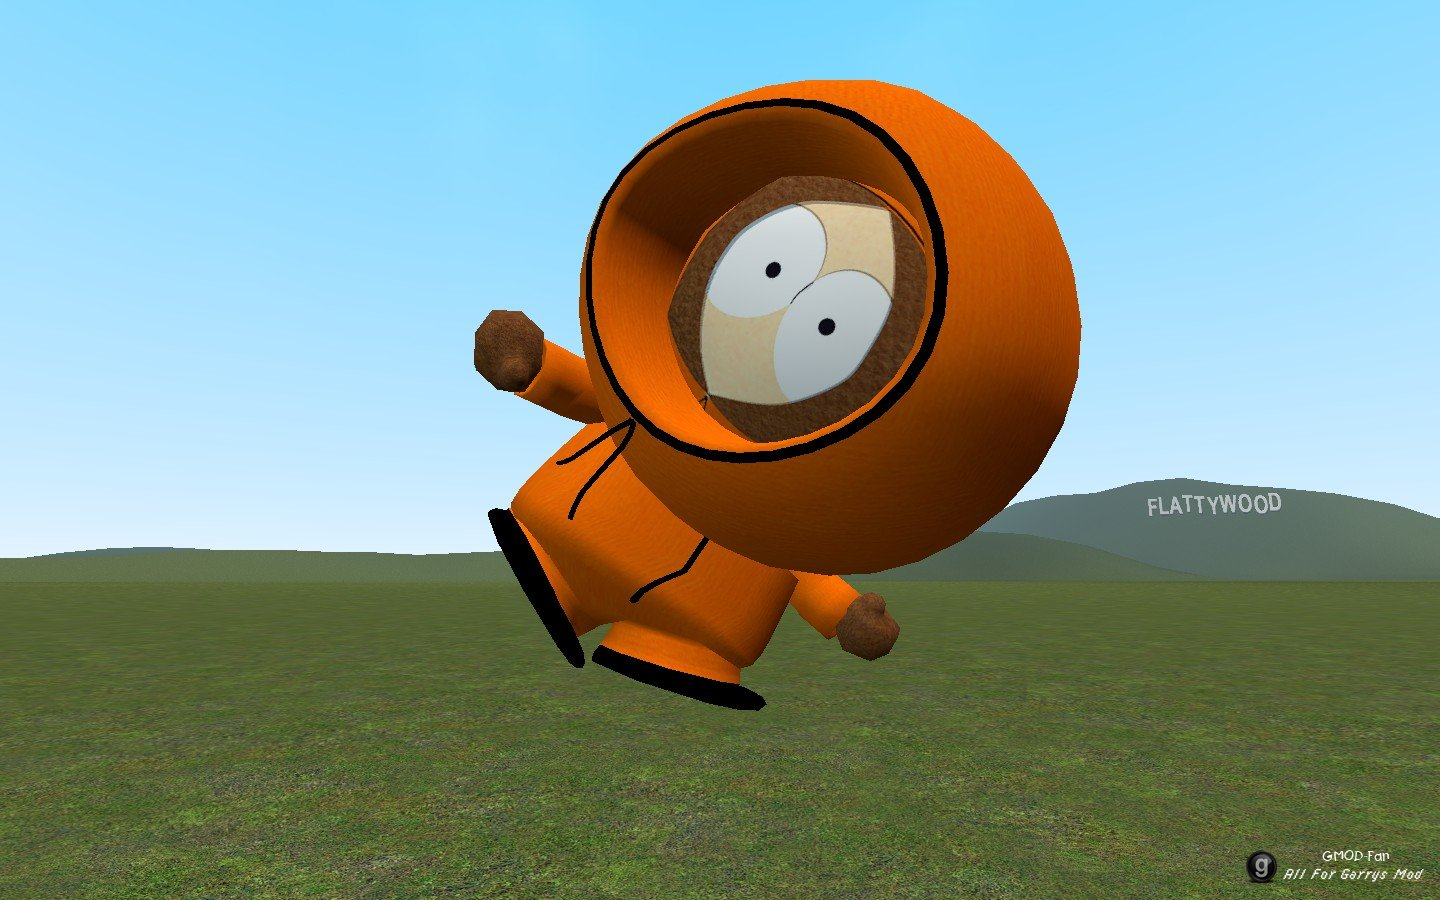 Kenny Mc Cormick from South Park